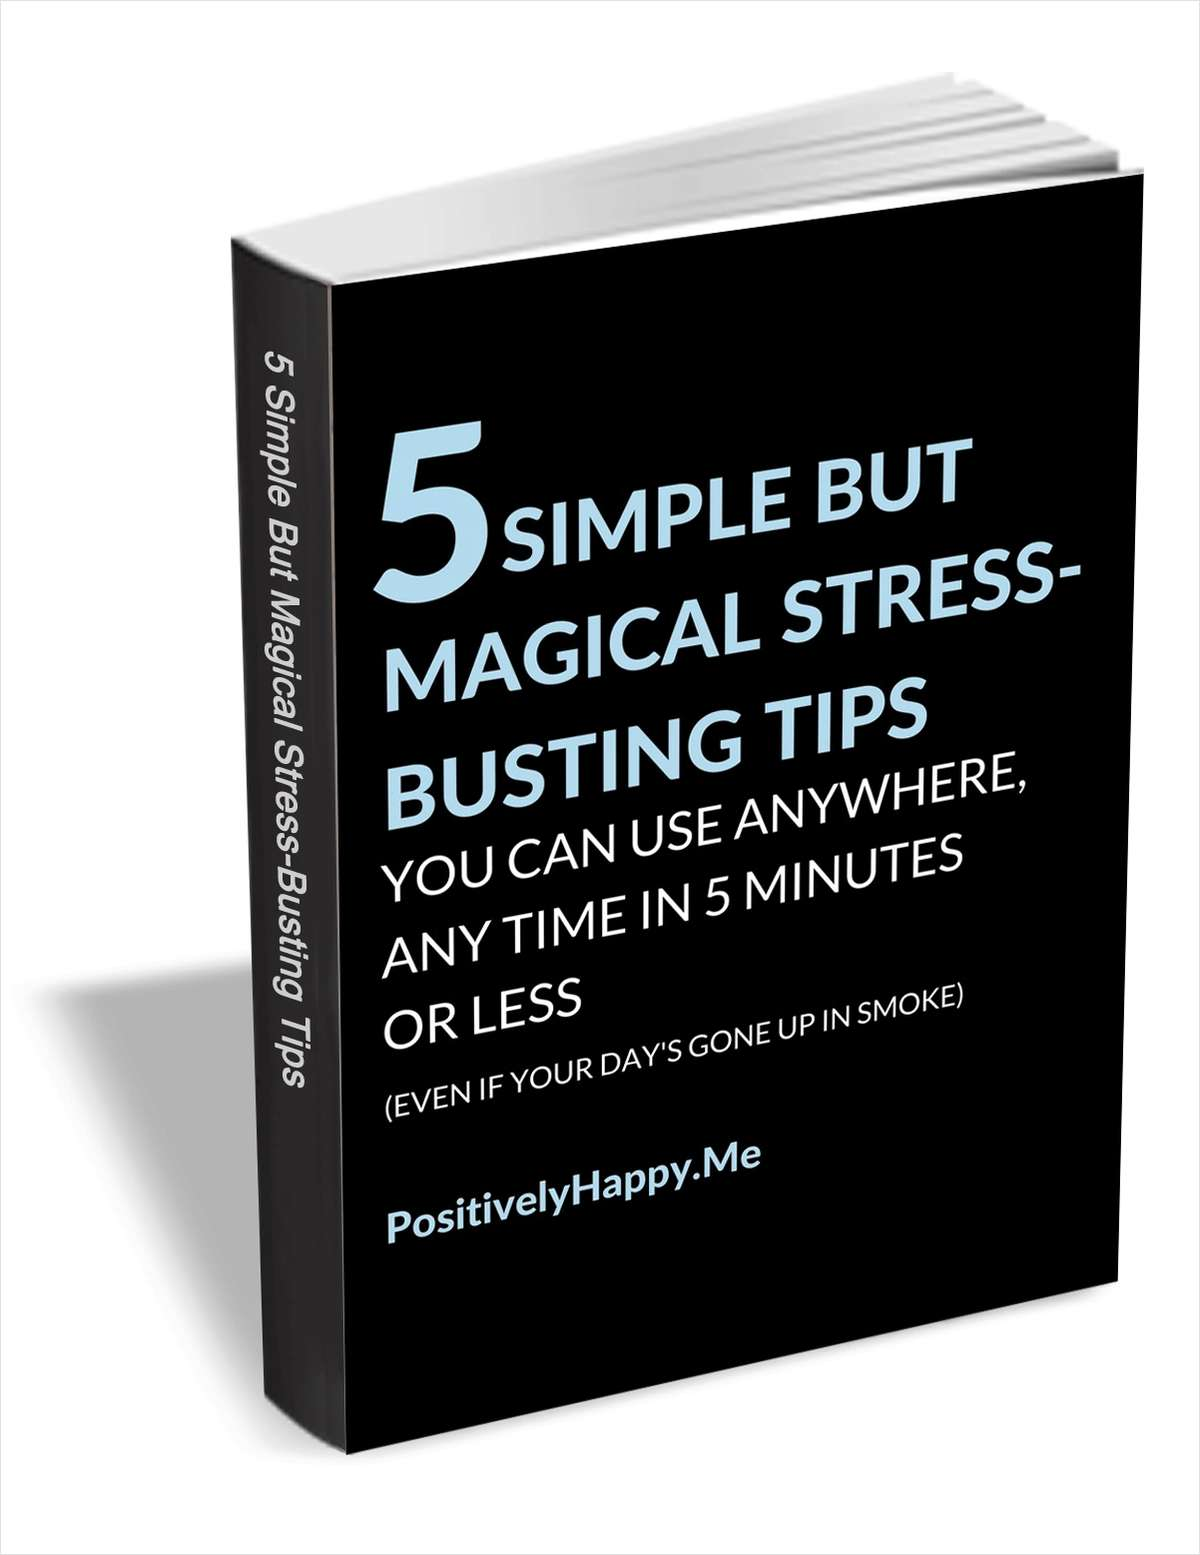 5 Simple But Magical Stress-Busting Tips You can Use Anywhere, Any Time in 5 Minutes or Less